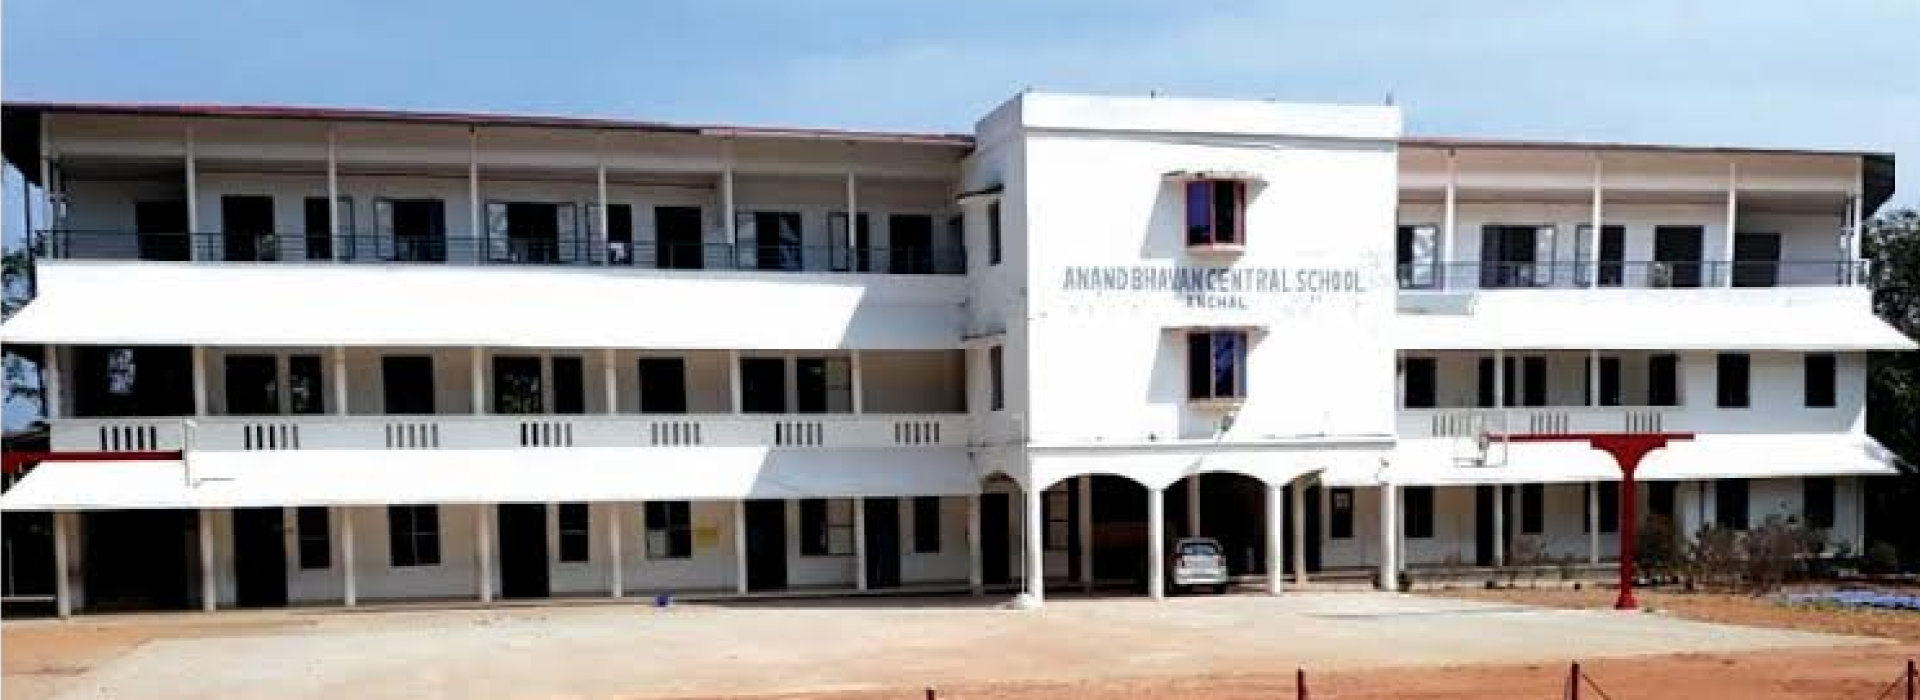 Anand Bhavan Central School is located at Anchal in Kollam District.